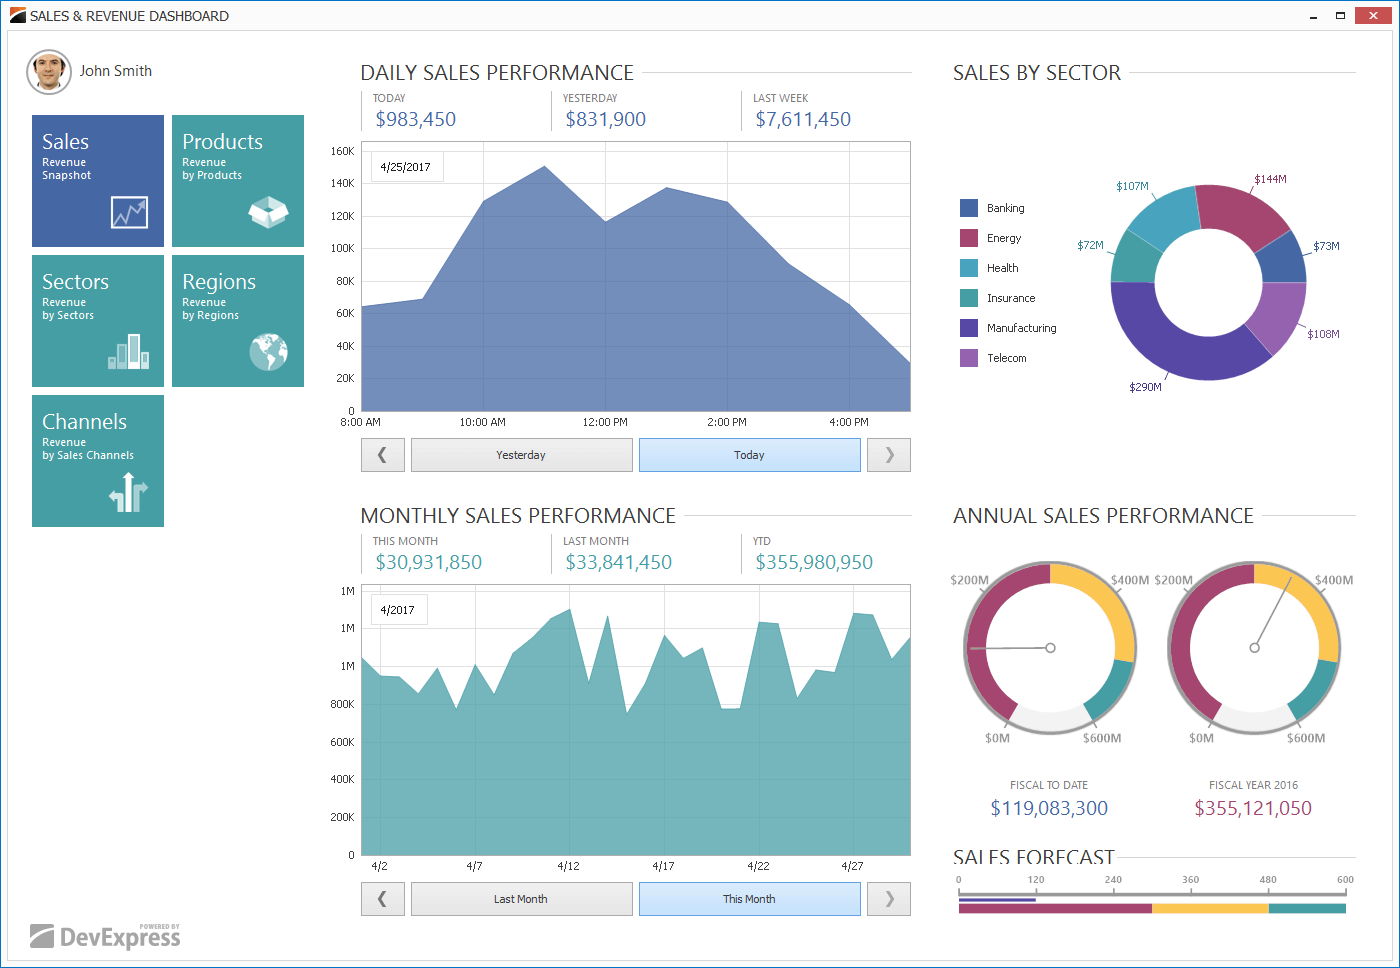 Sales and Revenue Dashboard